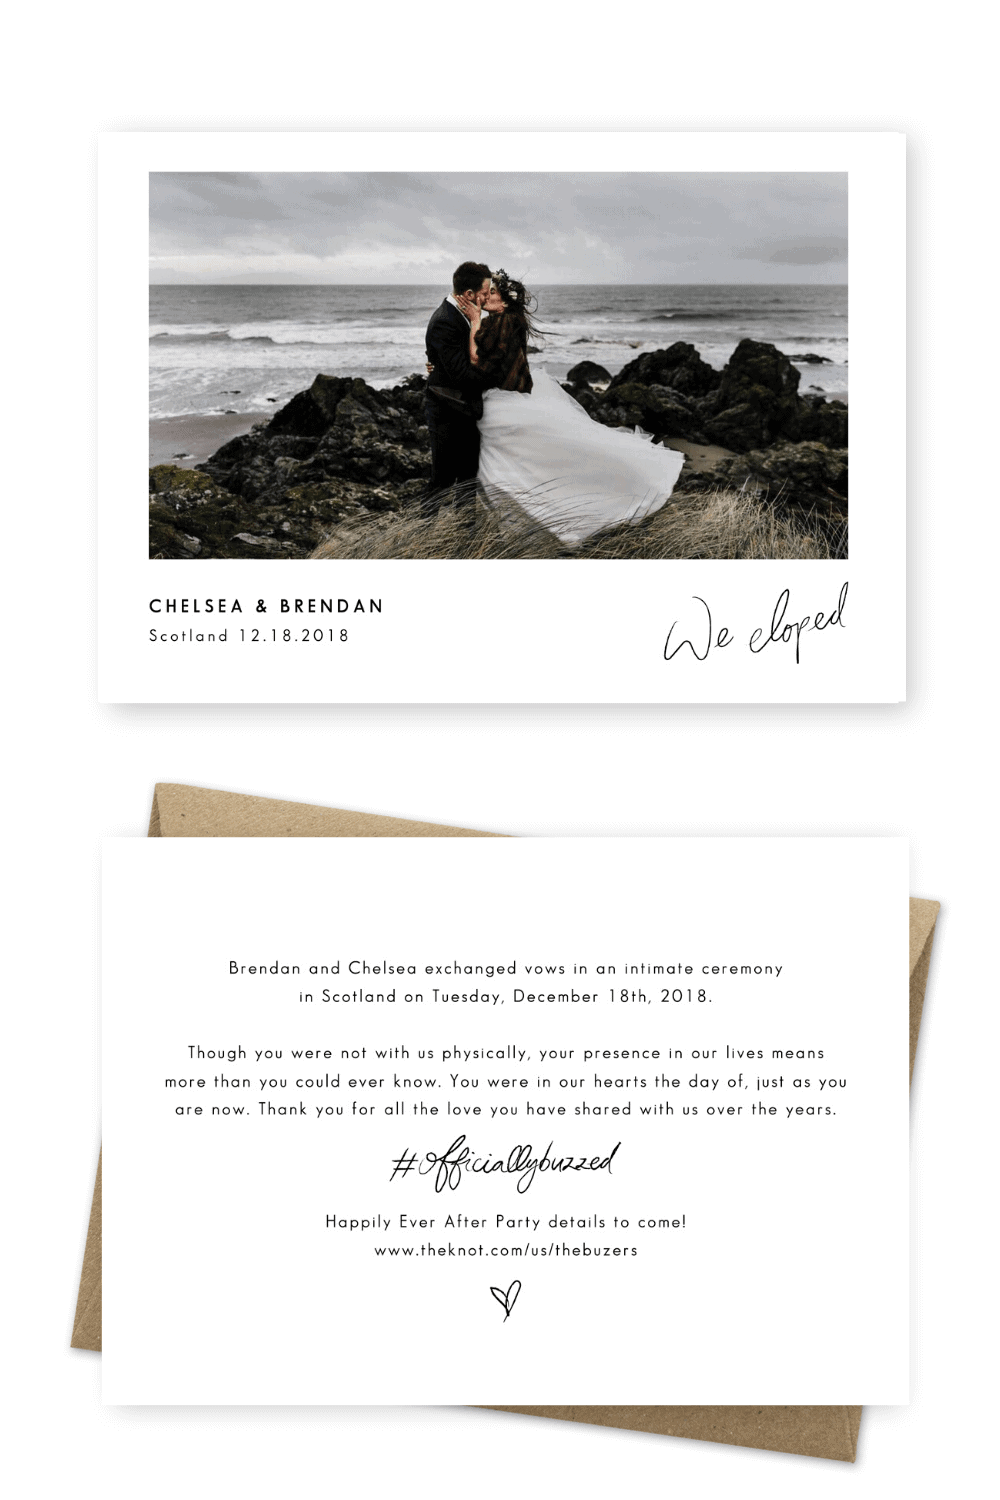 Elopement Wording Ideas Wedding Announcement Examples Epic Love Story Photography For the Love of Stationery (1)